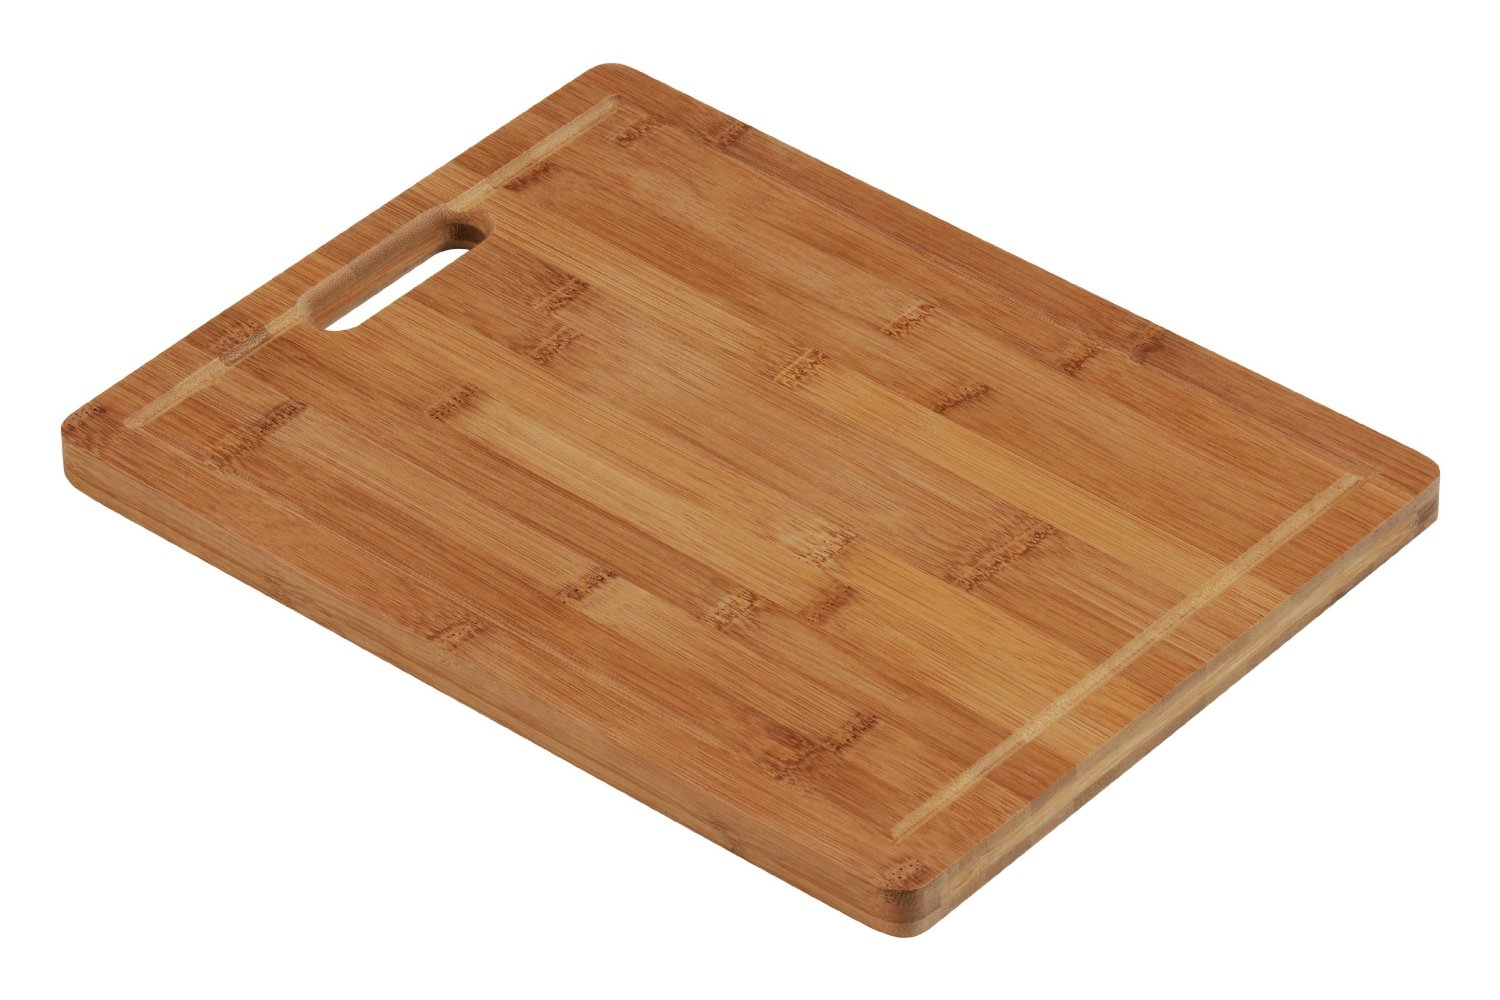 Bamboo Rectangular Chopping Board With Handles Kitchen Wood Worktop Slicing Ebay